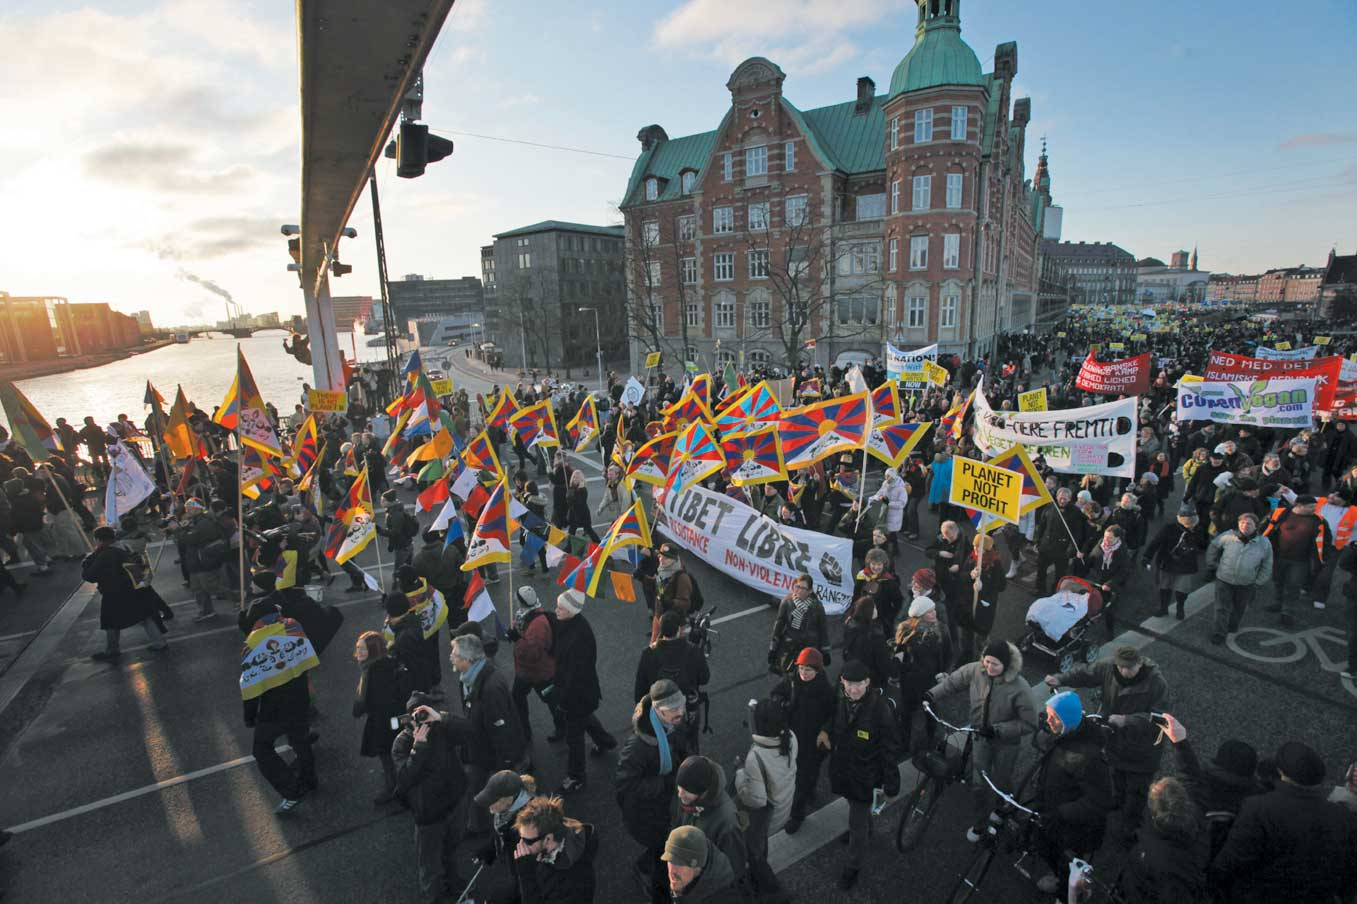 Tens of thousands demonstrators take part in a march leaving from parliament in the center of Copenhagen on Saturday.